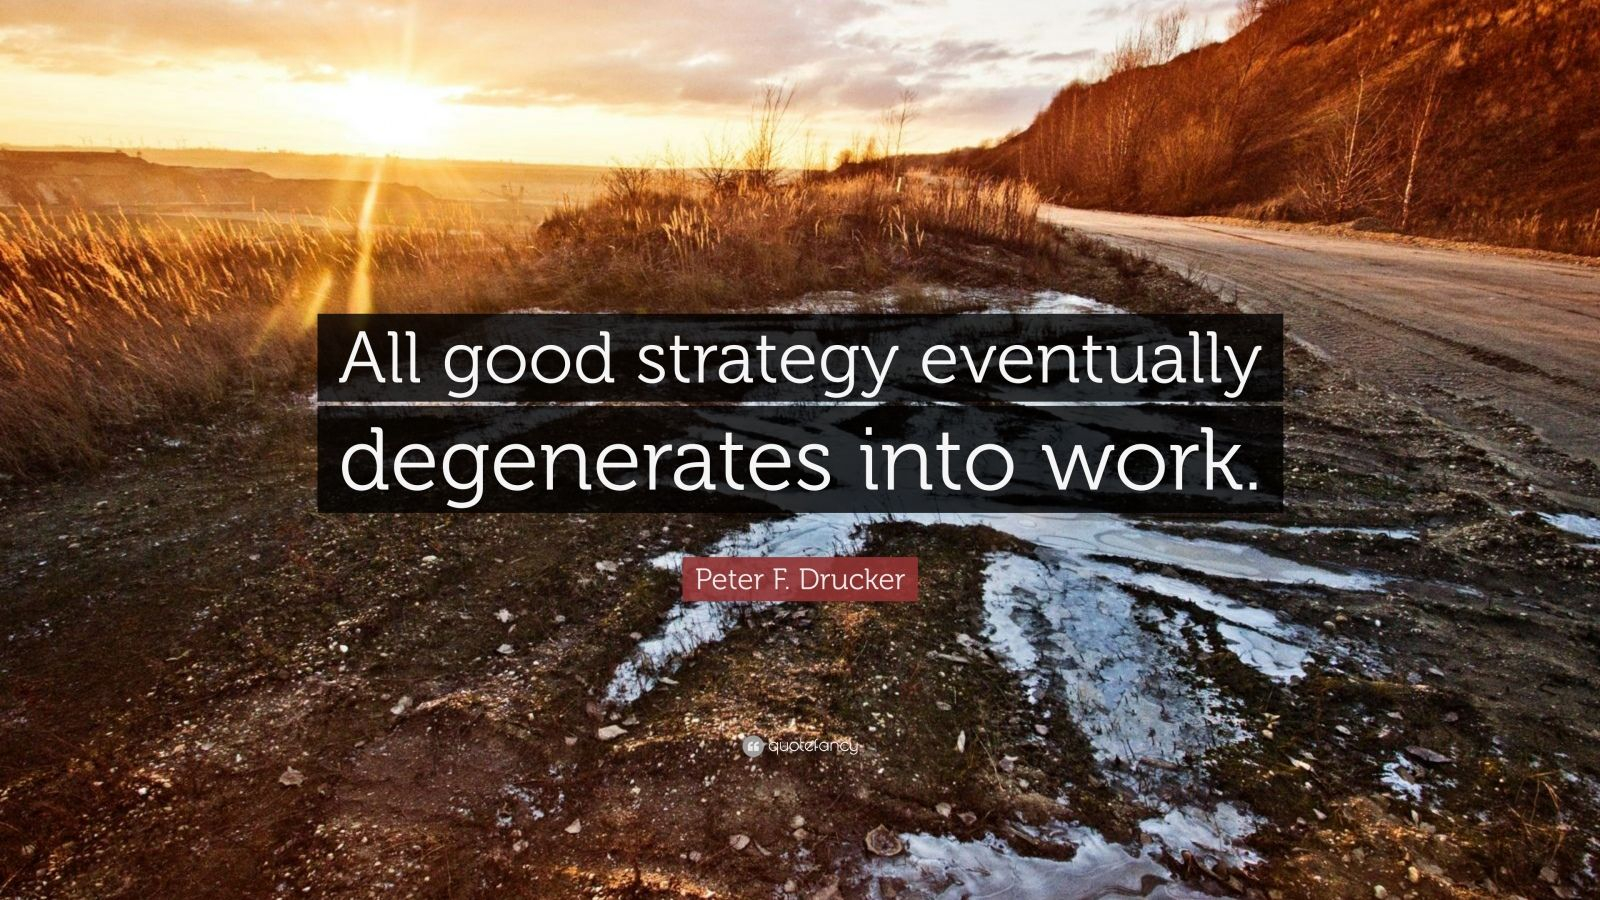 """Peter F. Drucker Quote: """"All good strategy eventually degenerates into work."""""""